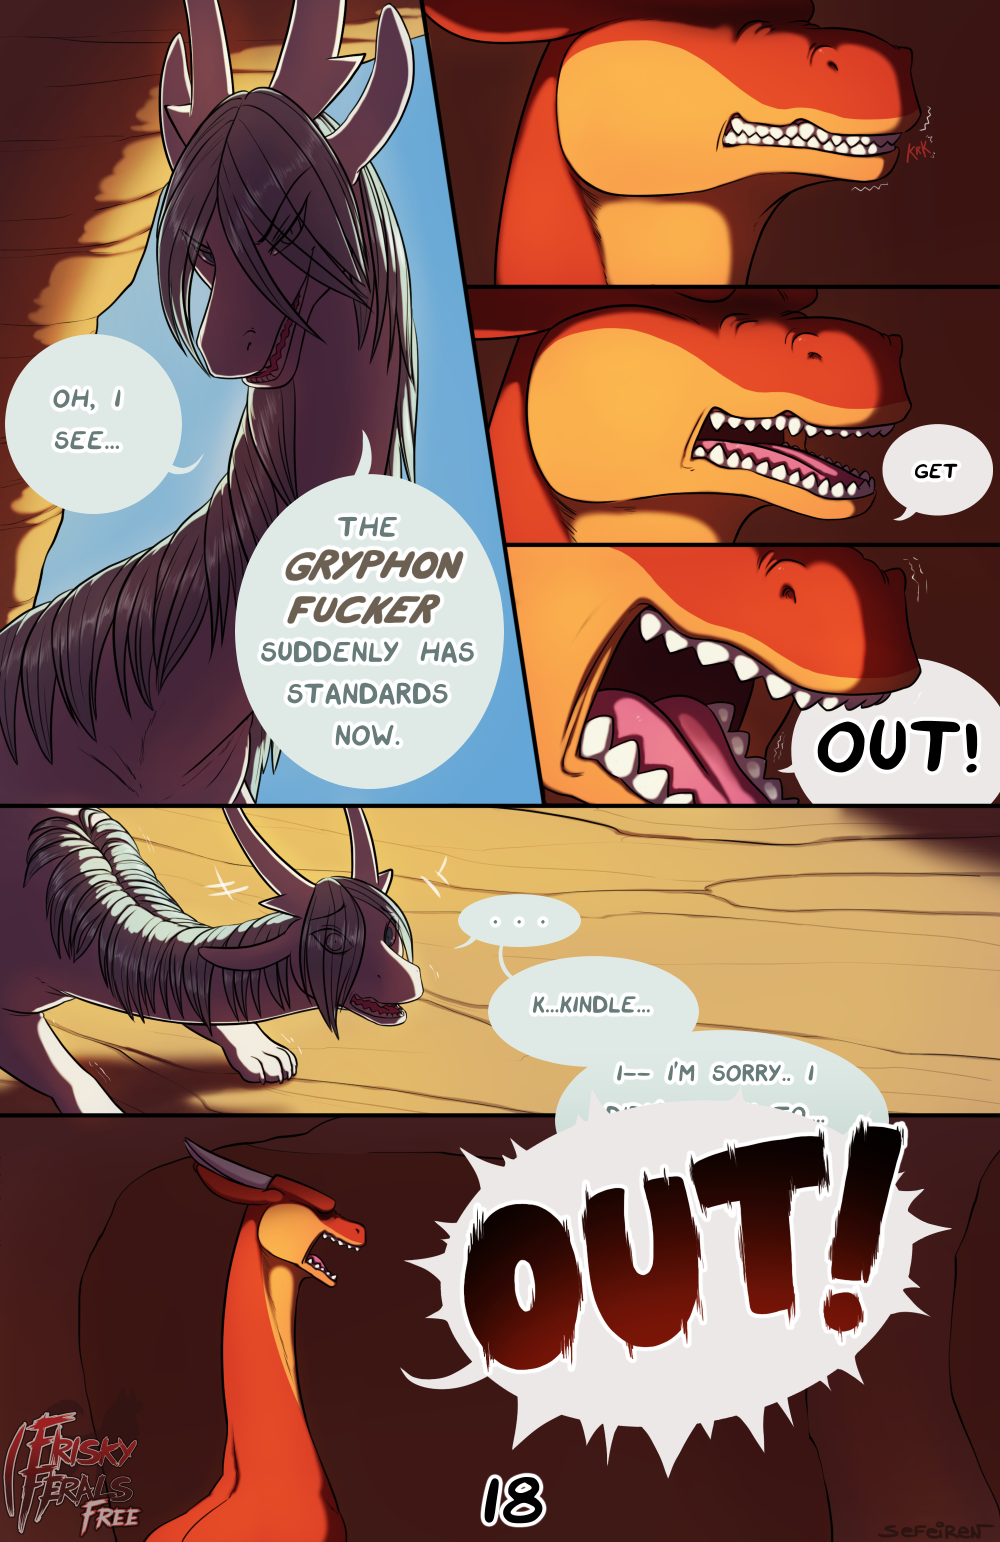 Furry Henta Comics with pool: frisky ferals - family matters - e621